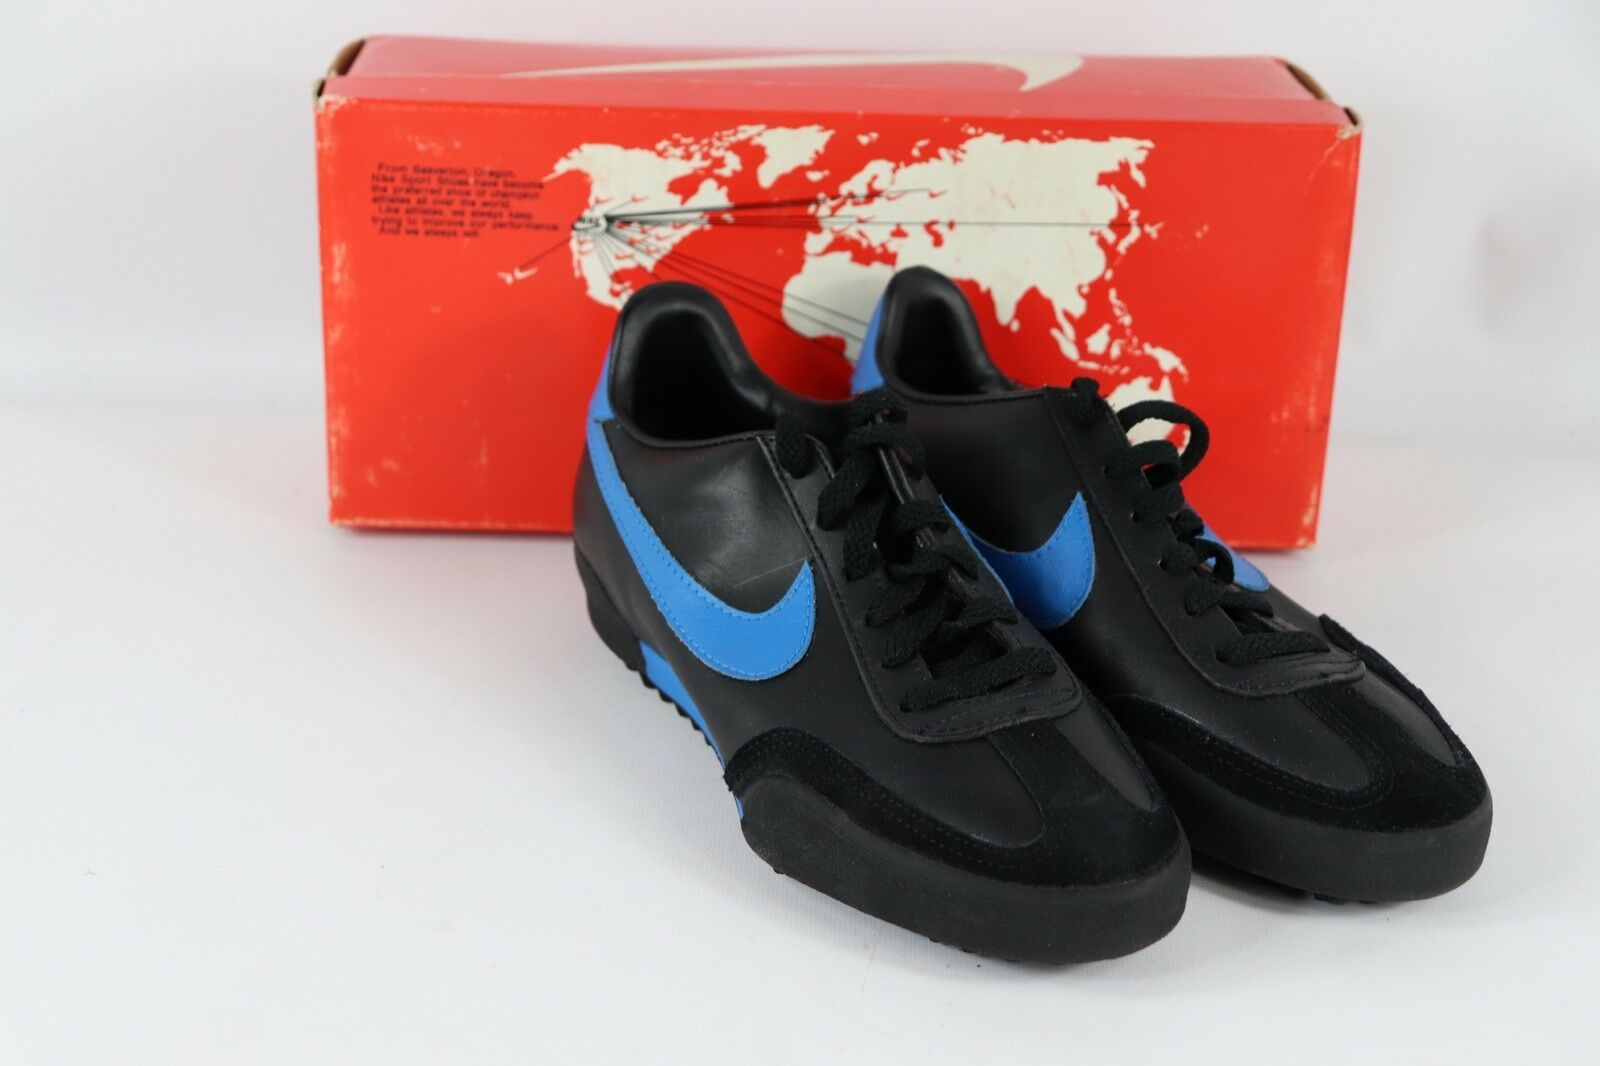 Vtg 80s New Nike Mens 7 Genoa Indoor Turf Soccer shoes Trainers Black bluee